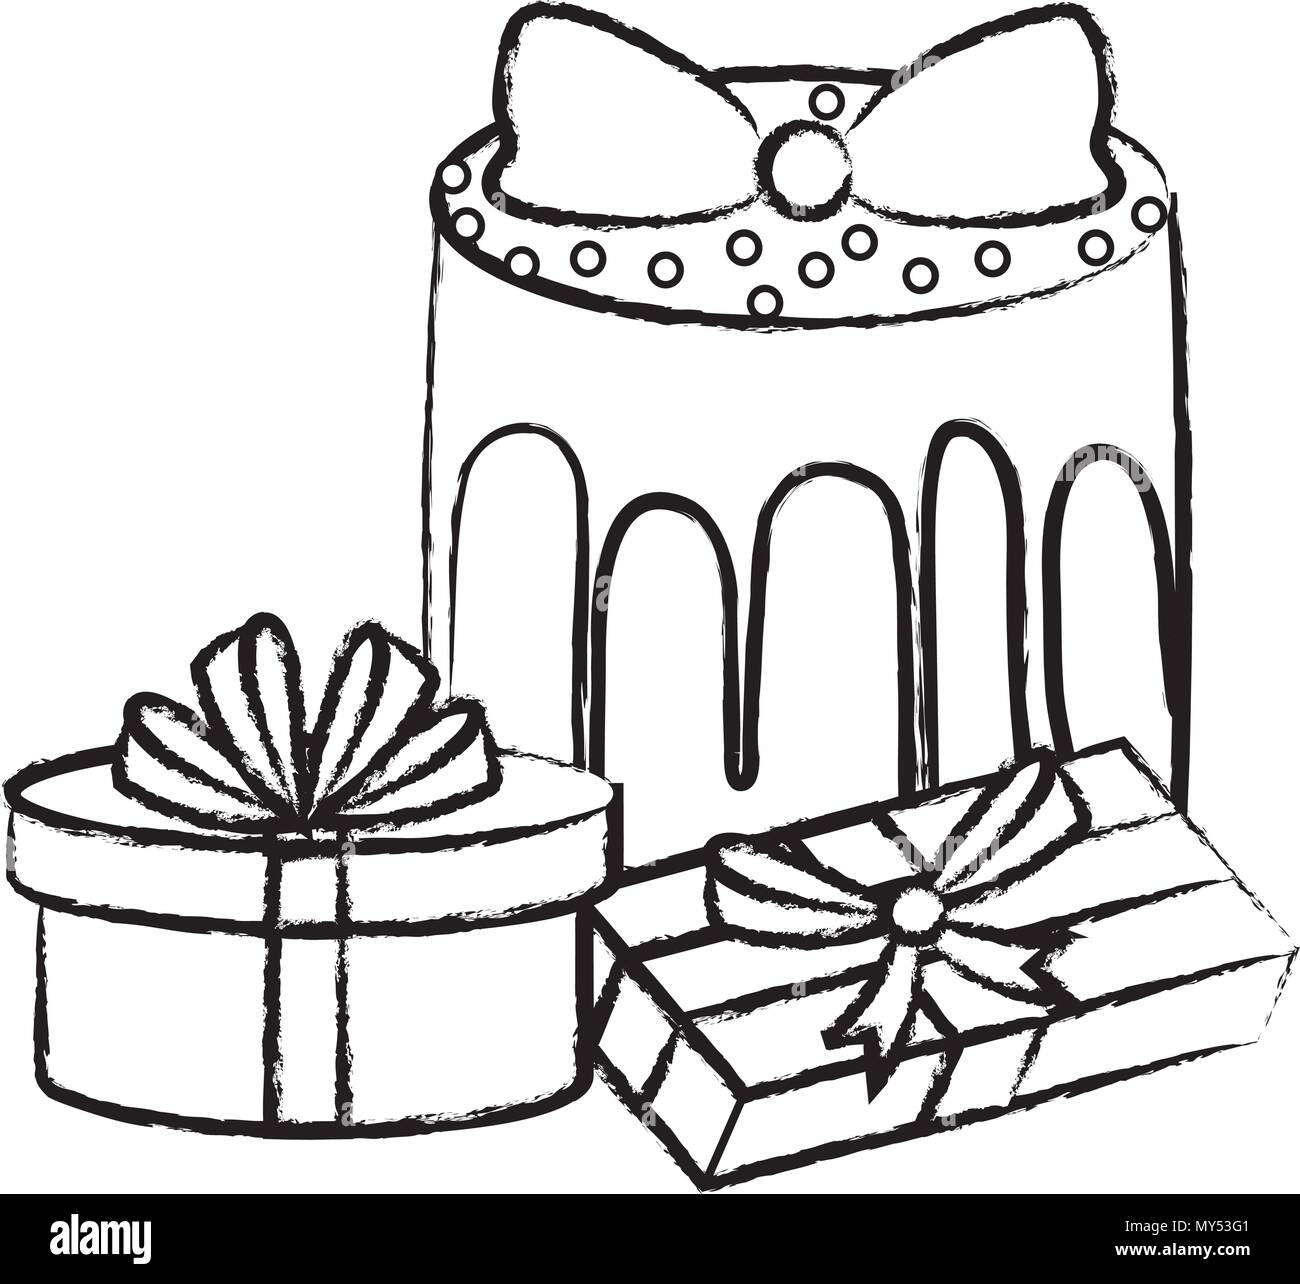 Sketch Of Gift Boxes And Birthday Cake Over White Background Vector